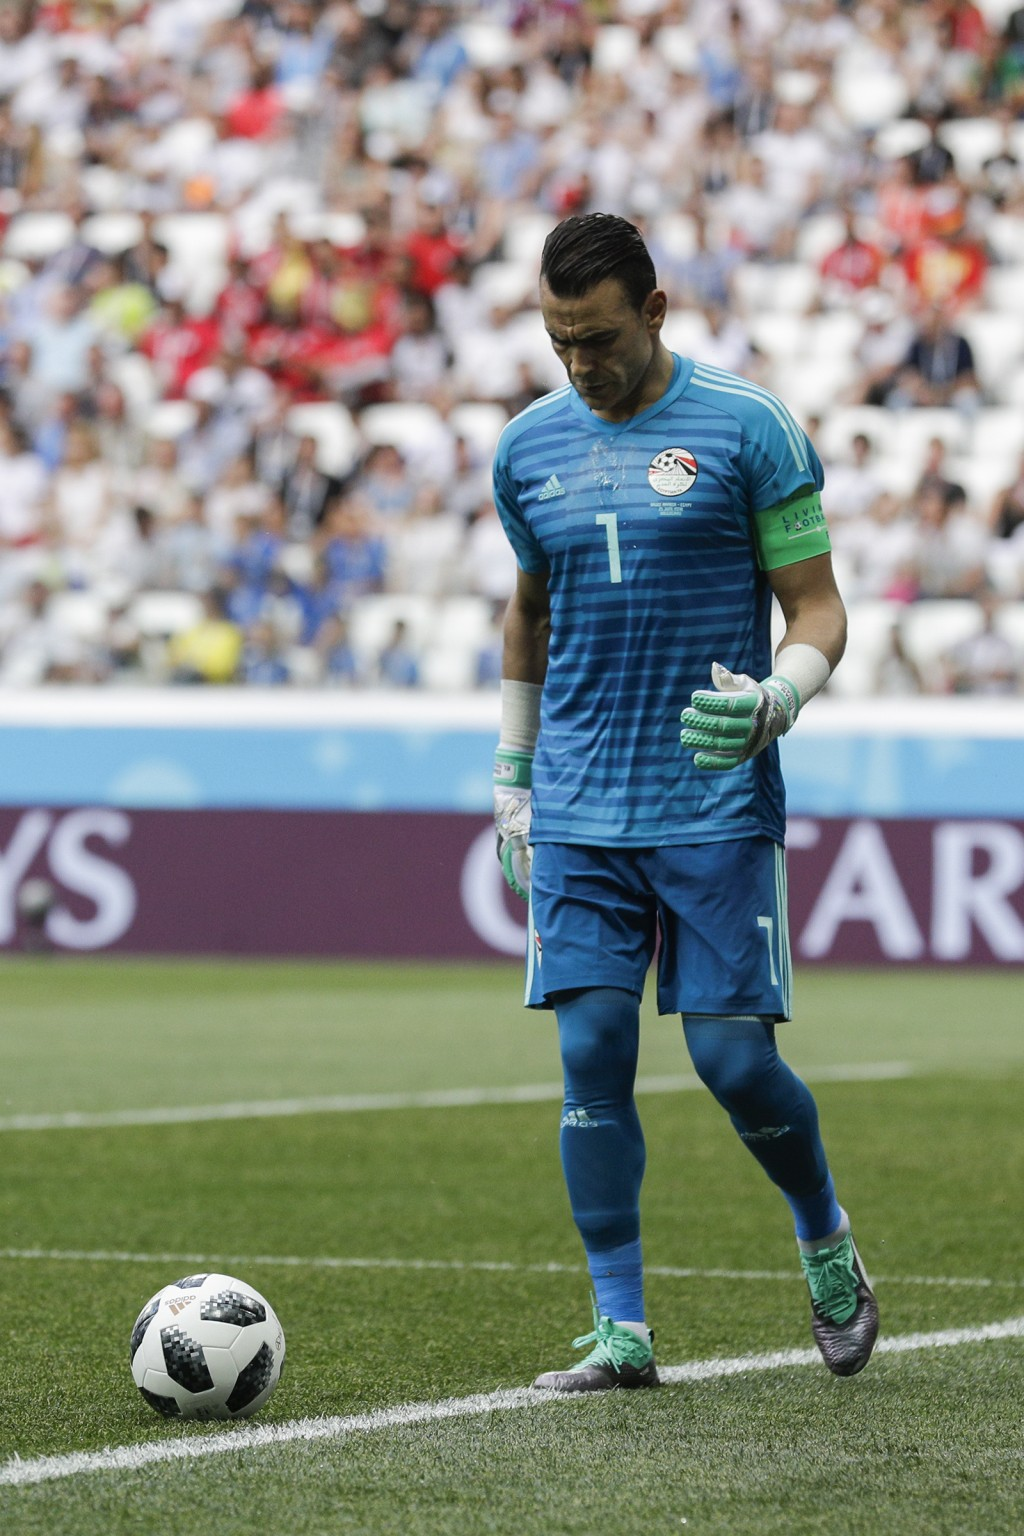 Egypt goalkeeper Essam El Hadary prepares to kick the ball during the group A match between Saudi Arabia and Egypt at the 2018 soccer World Cup at the...